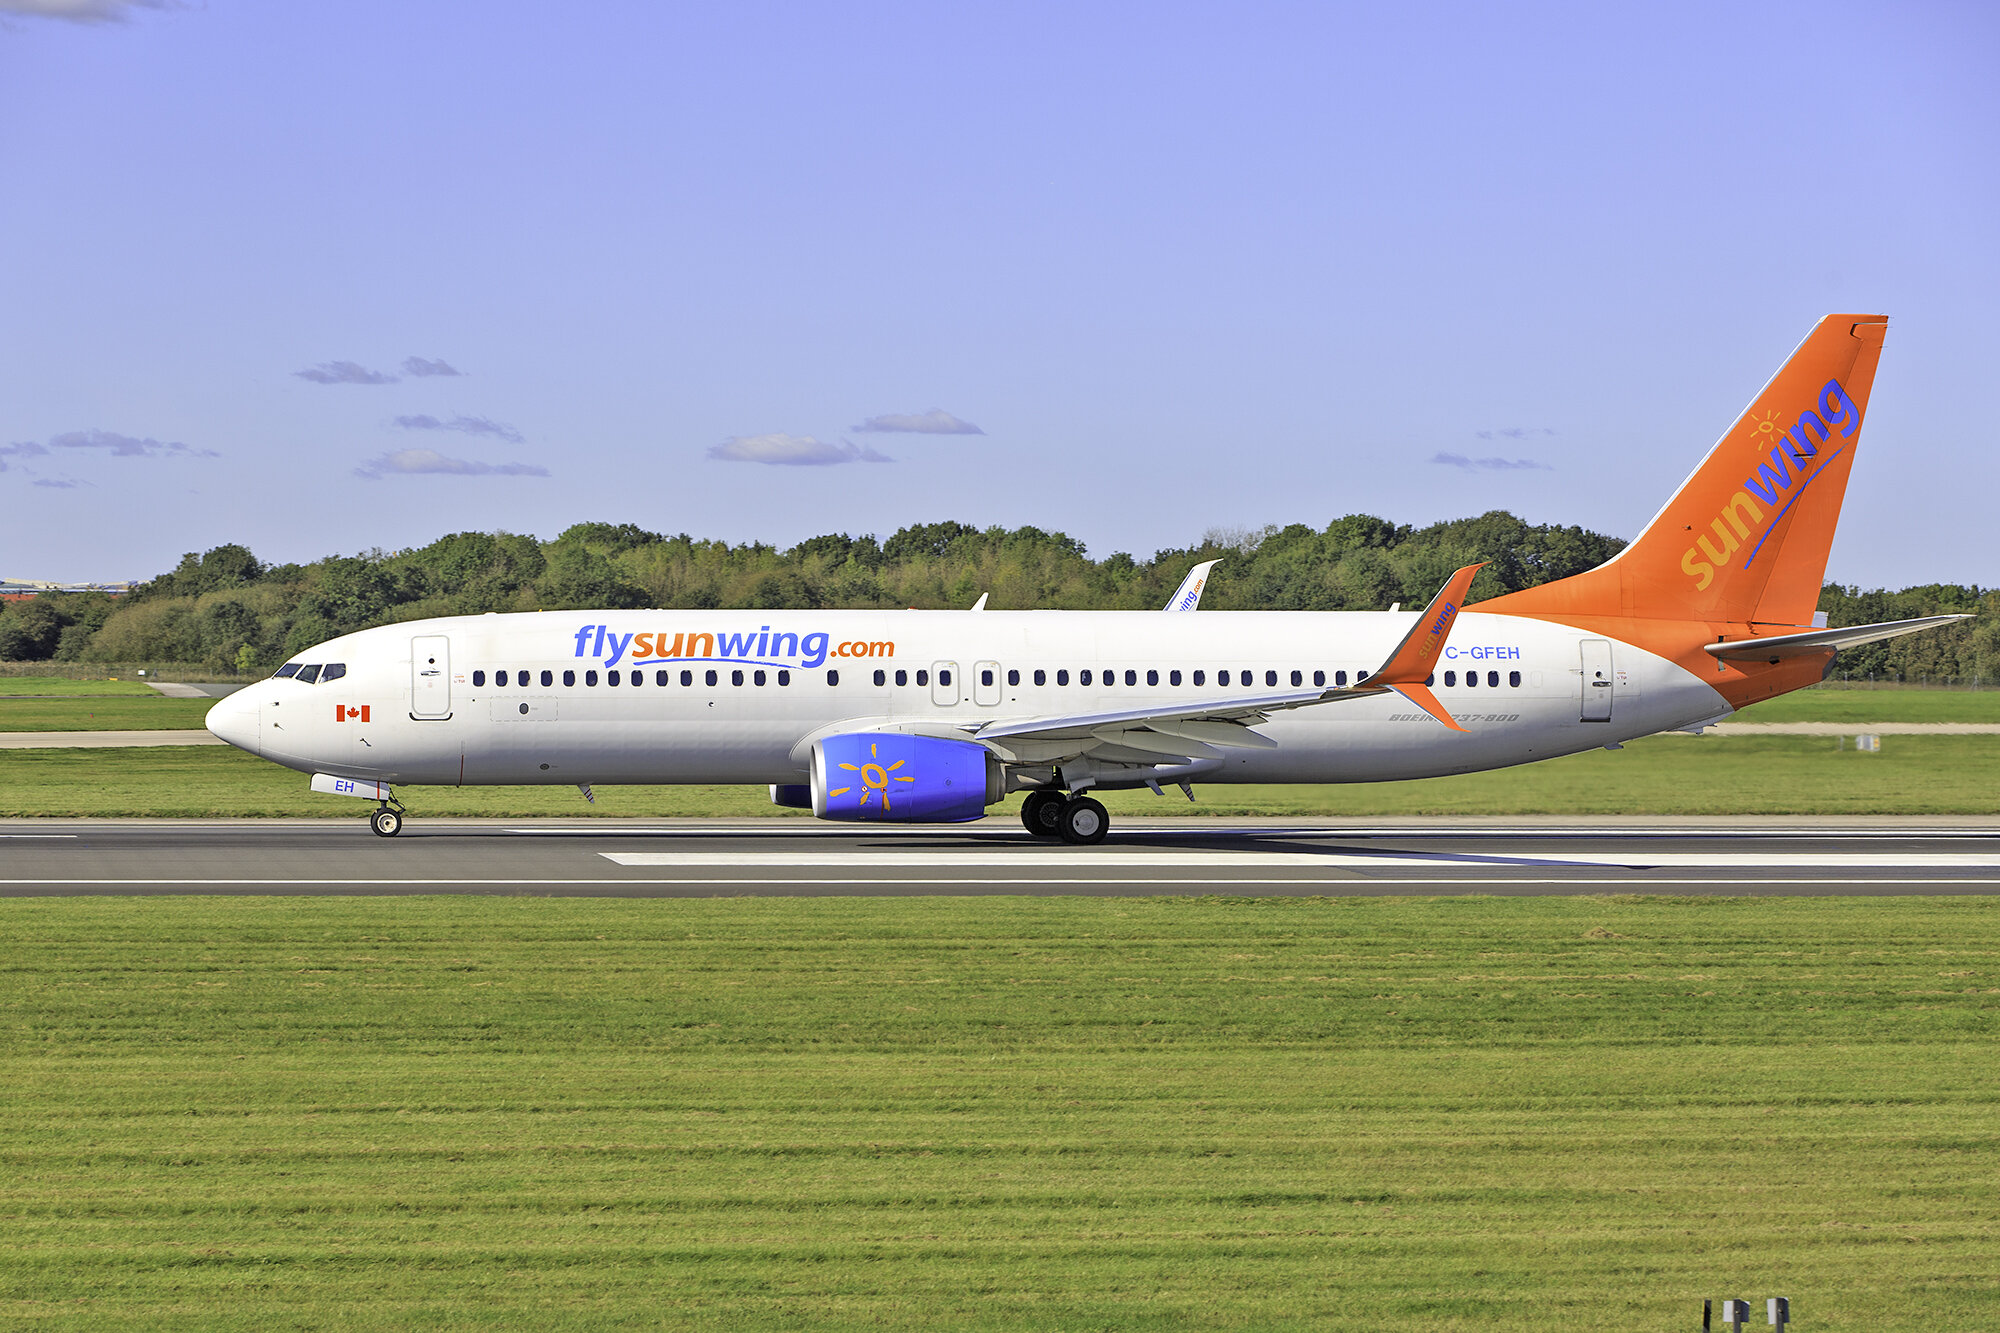 Sunwing B737-800 C-GFEH departing MAN on 2nd October. Photo: Paul Bailey